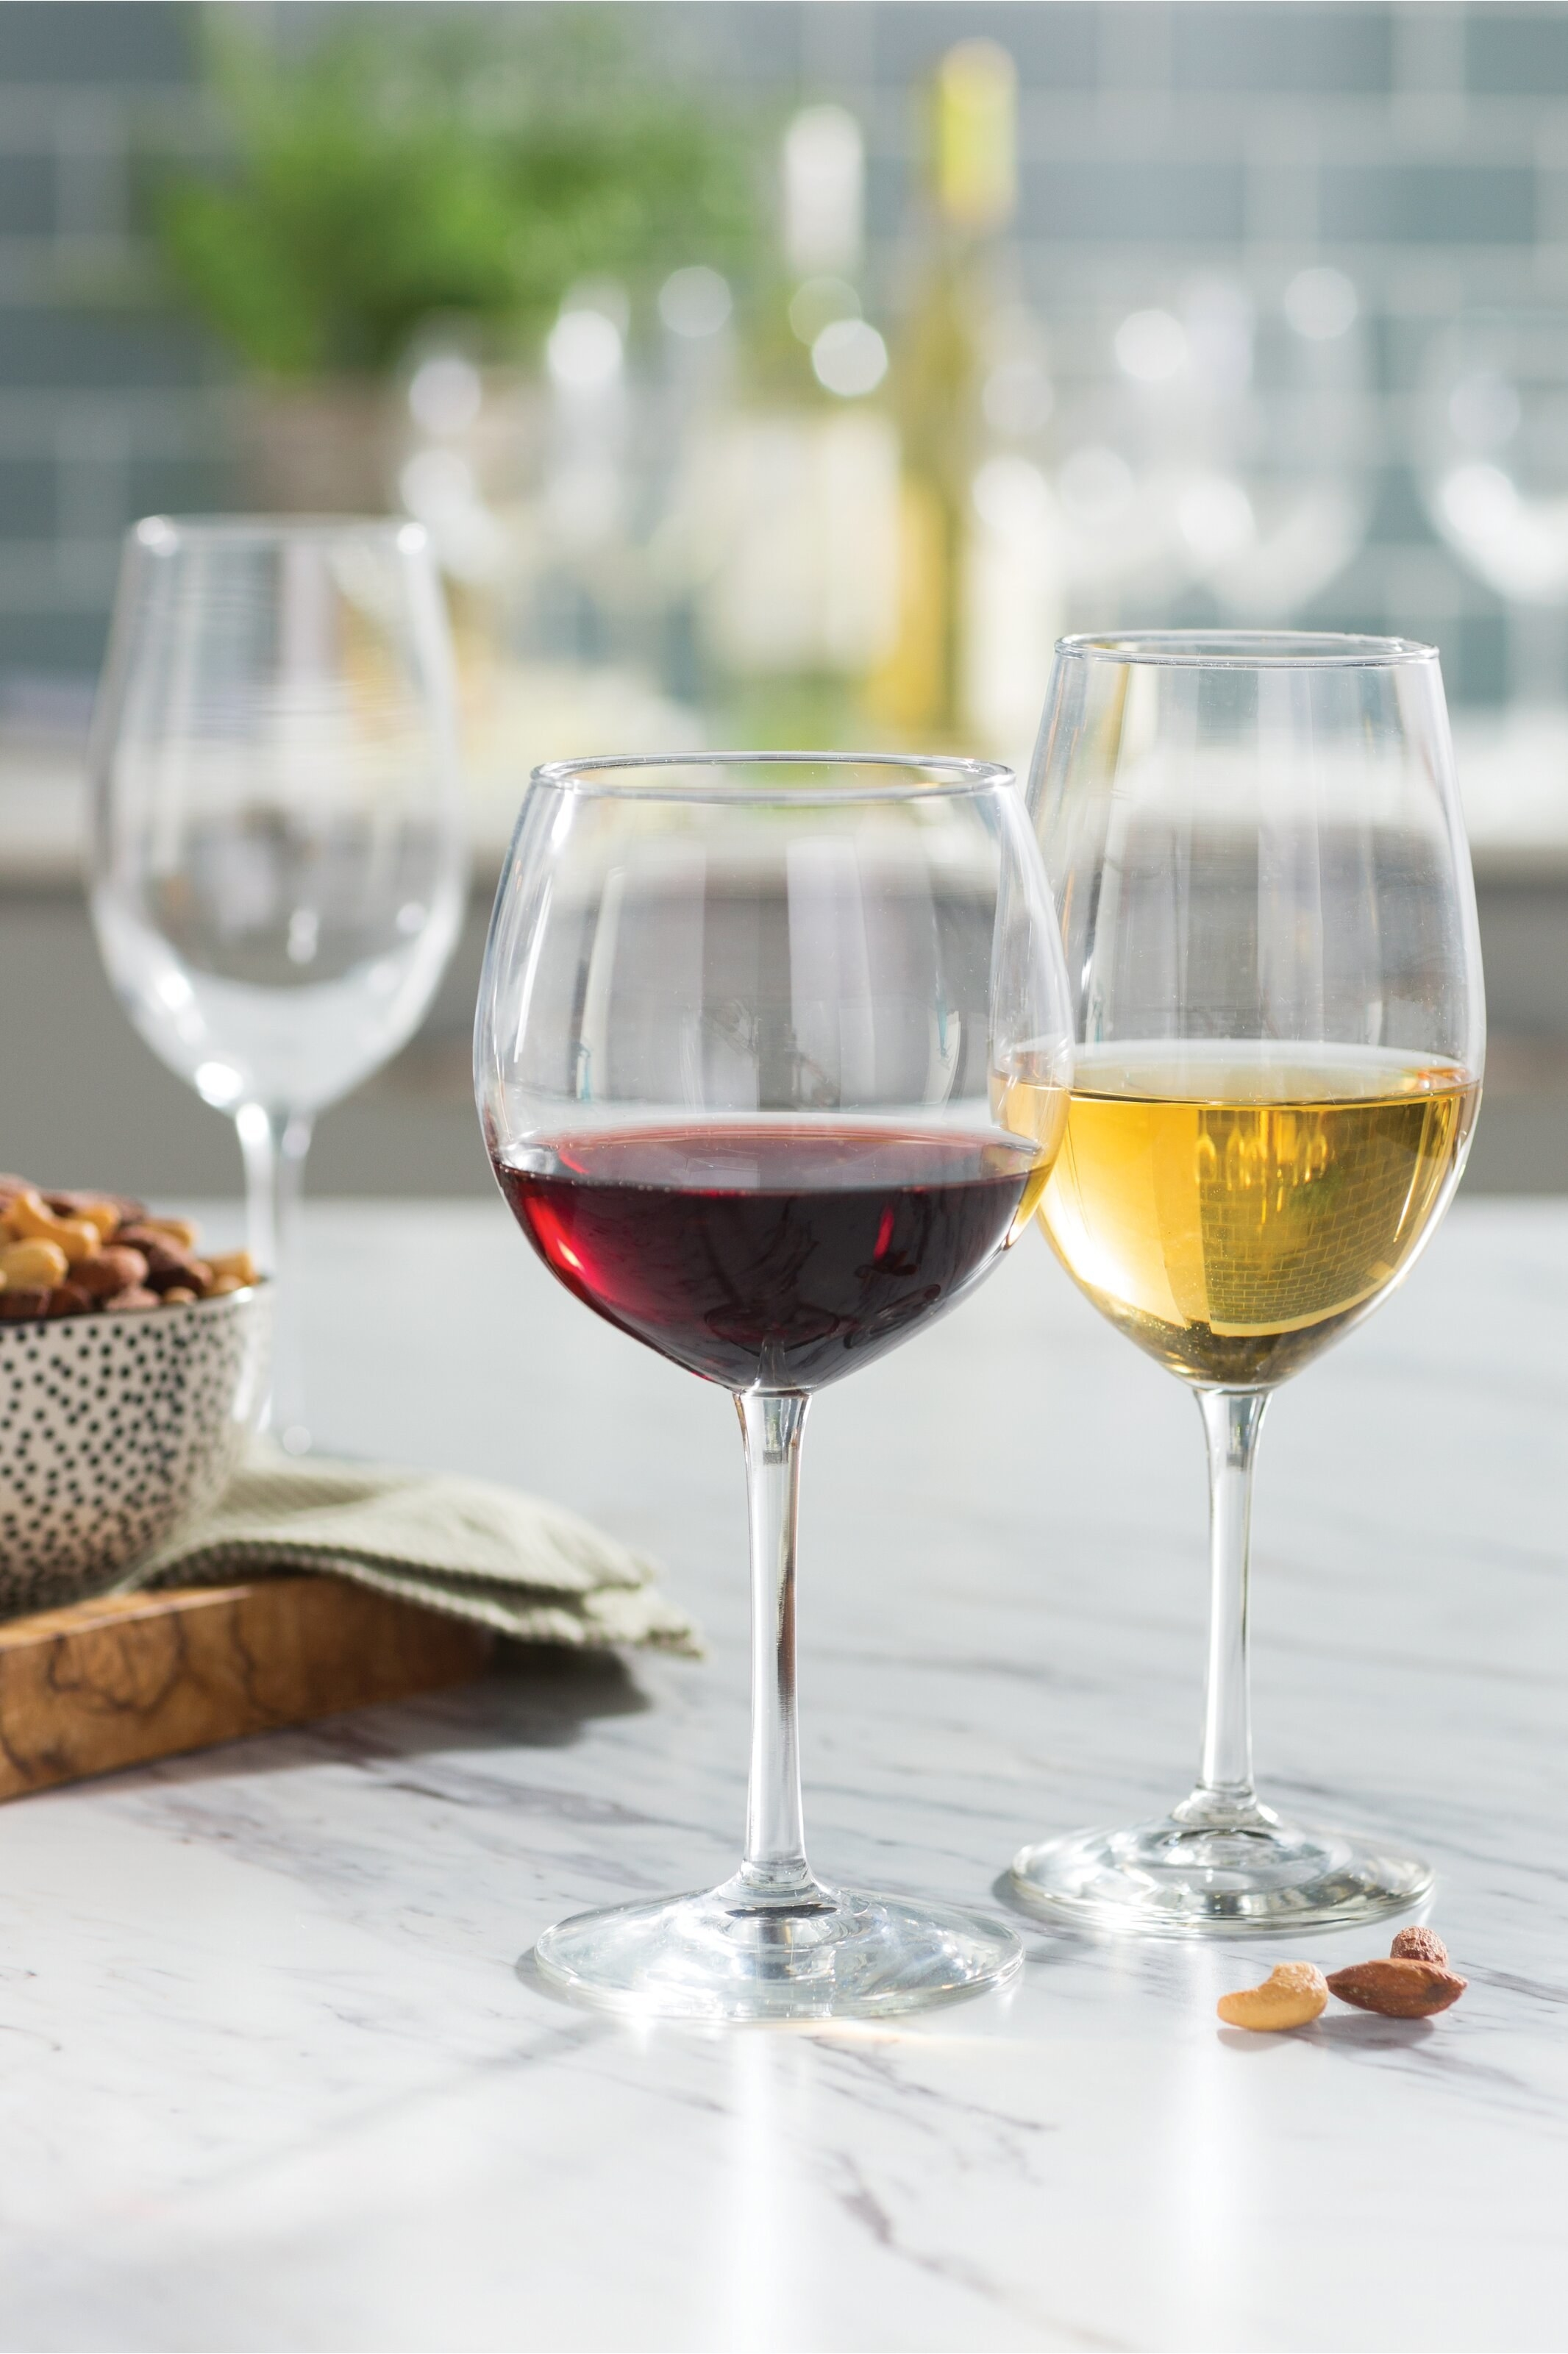 Wine glasses on kitchen counter